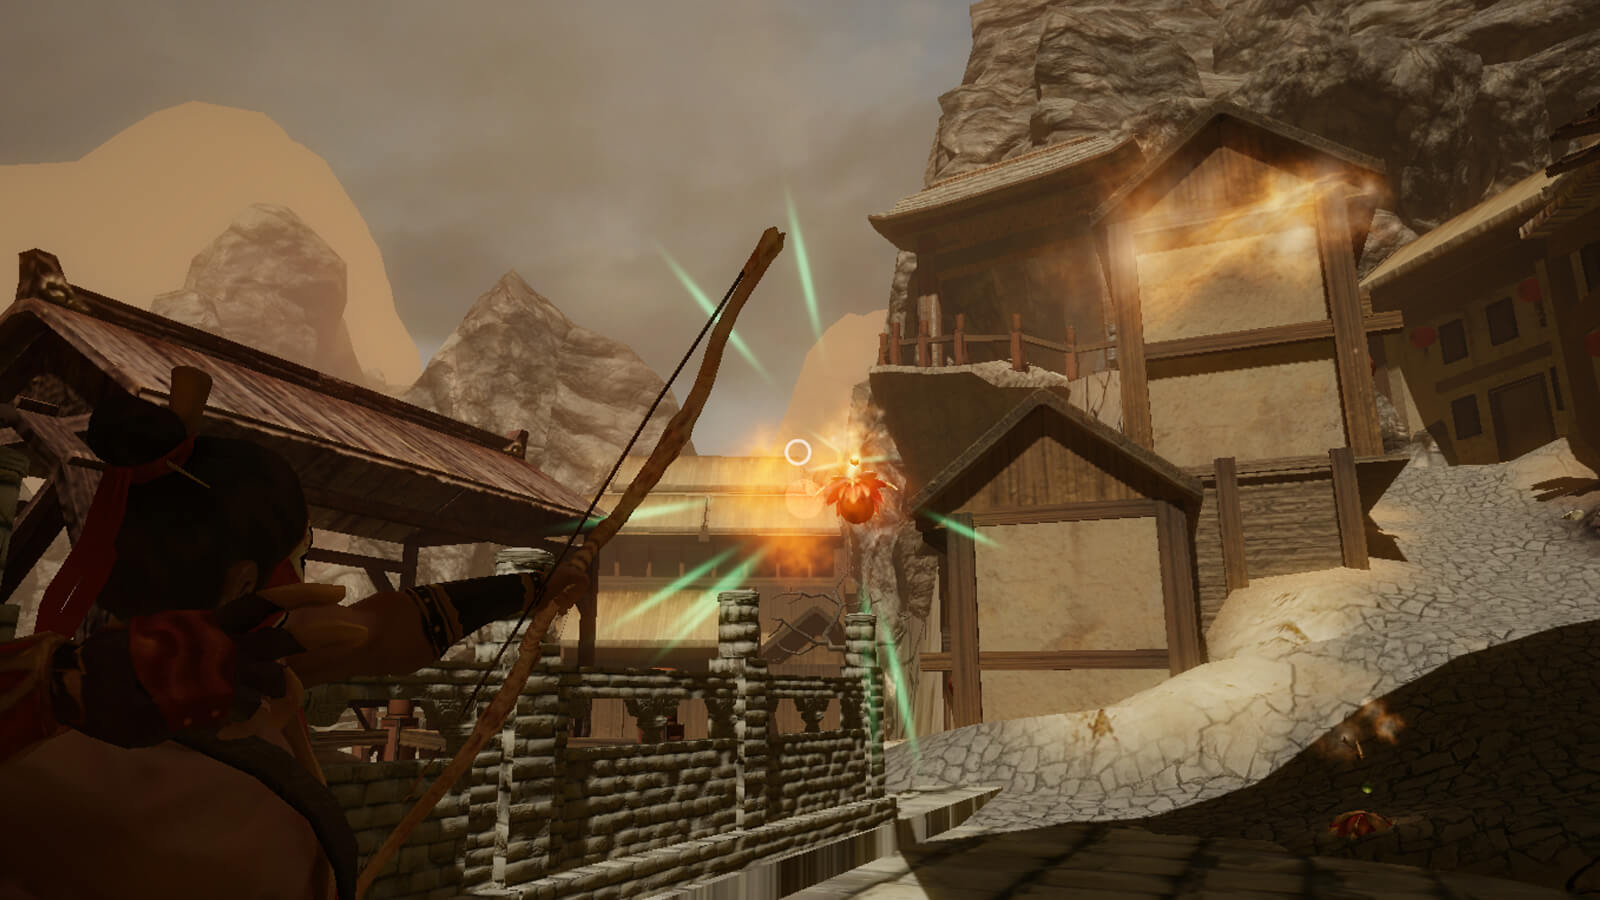 The player's character shooting an arrow at a glowing red object hanging in the air